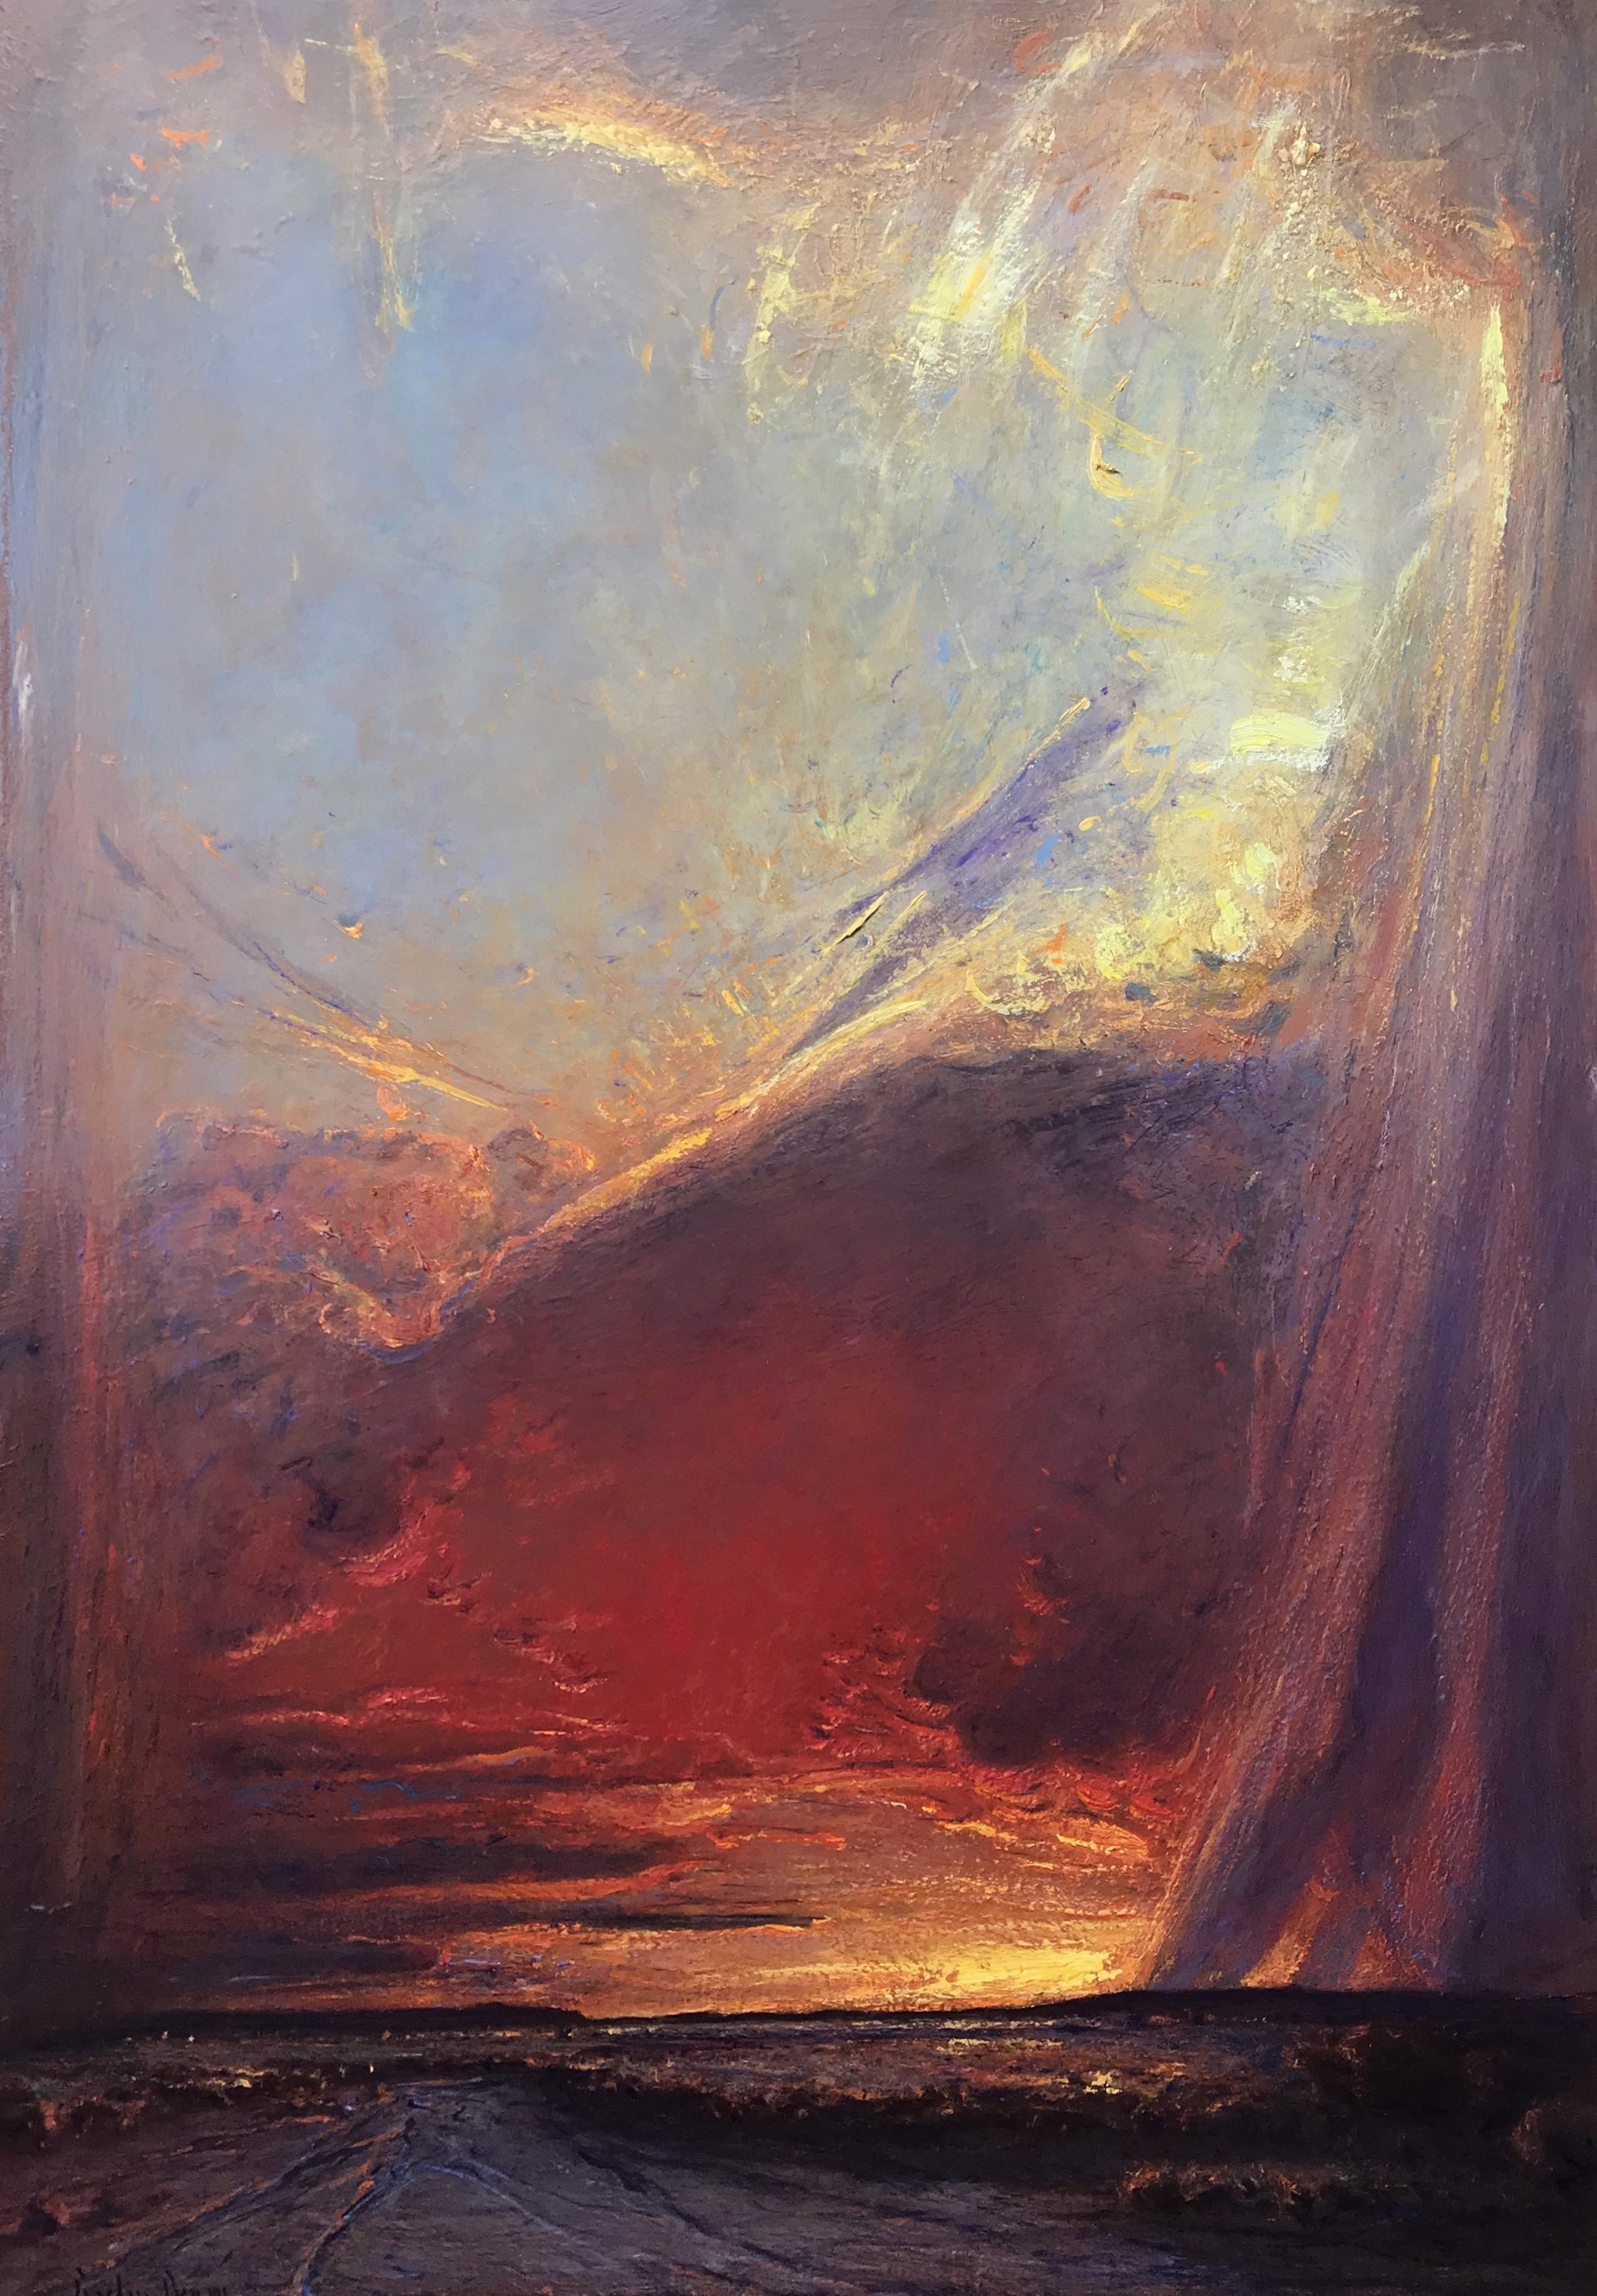 Afternoon Glow by Gordon Brown